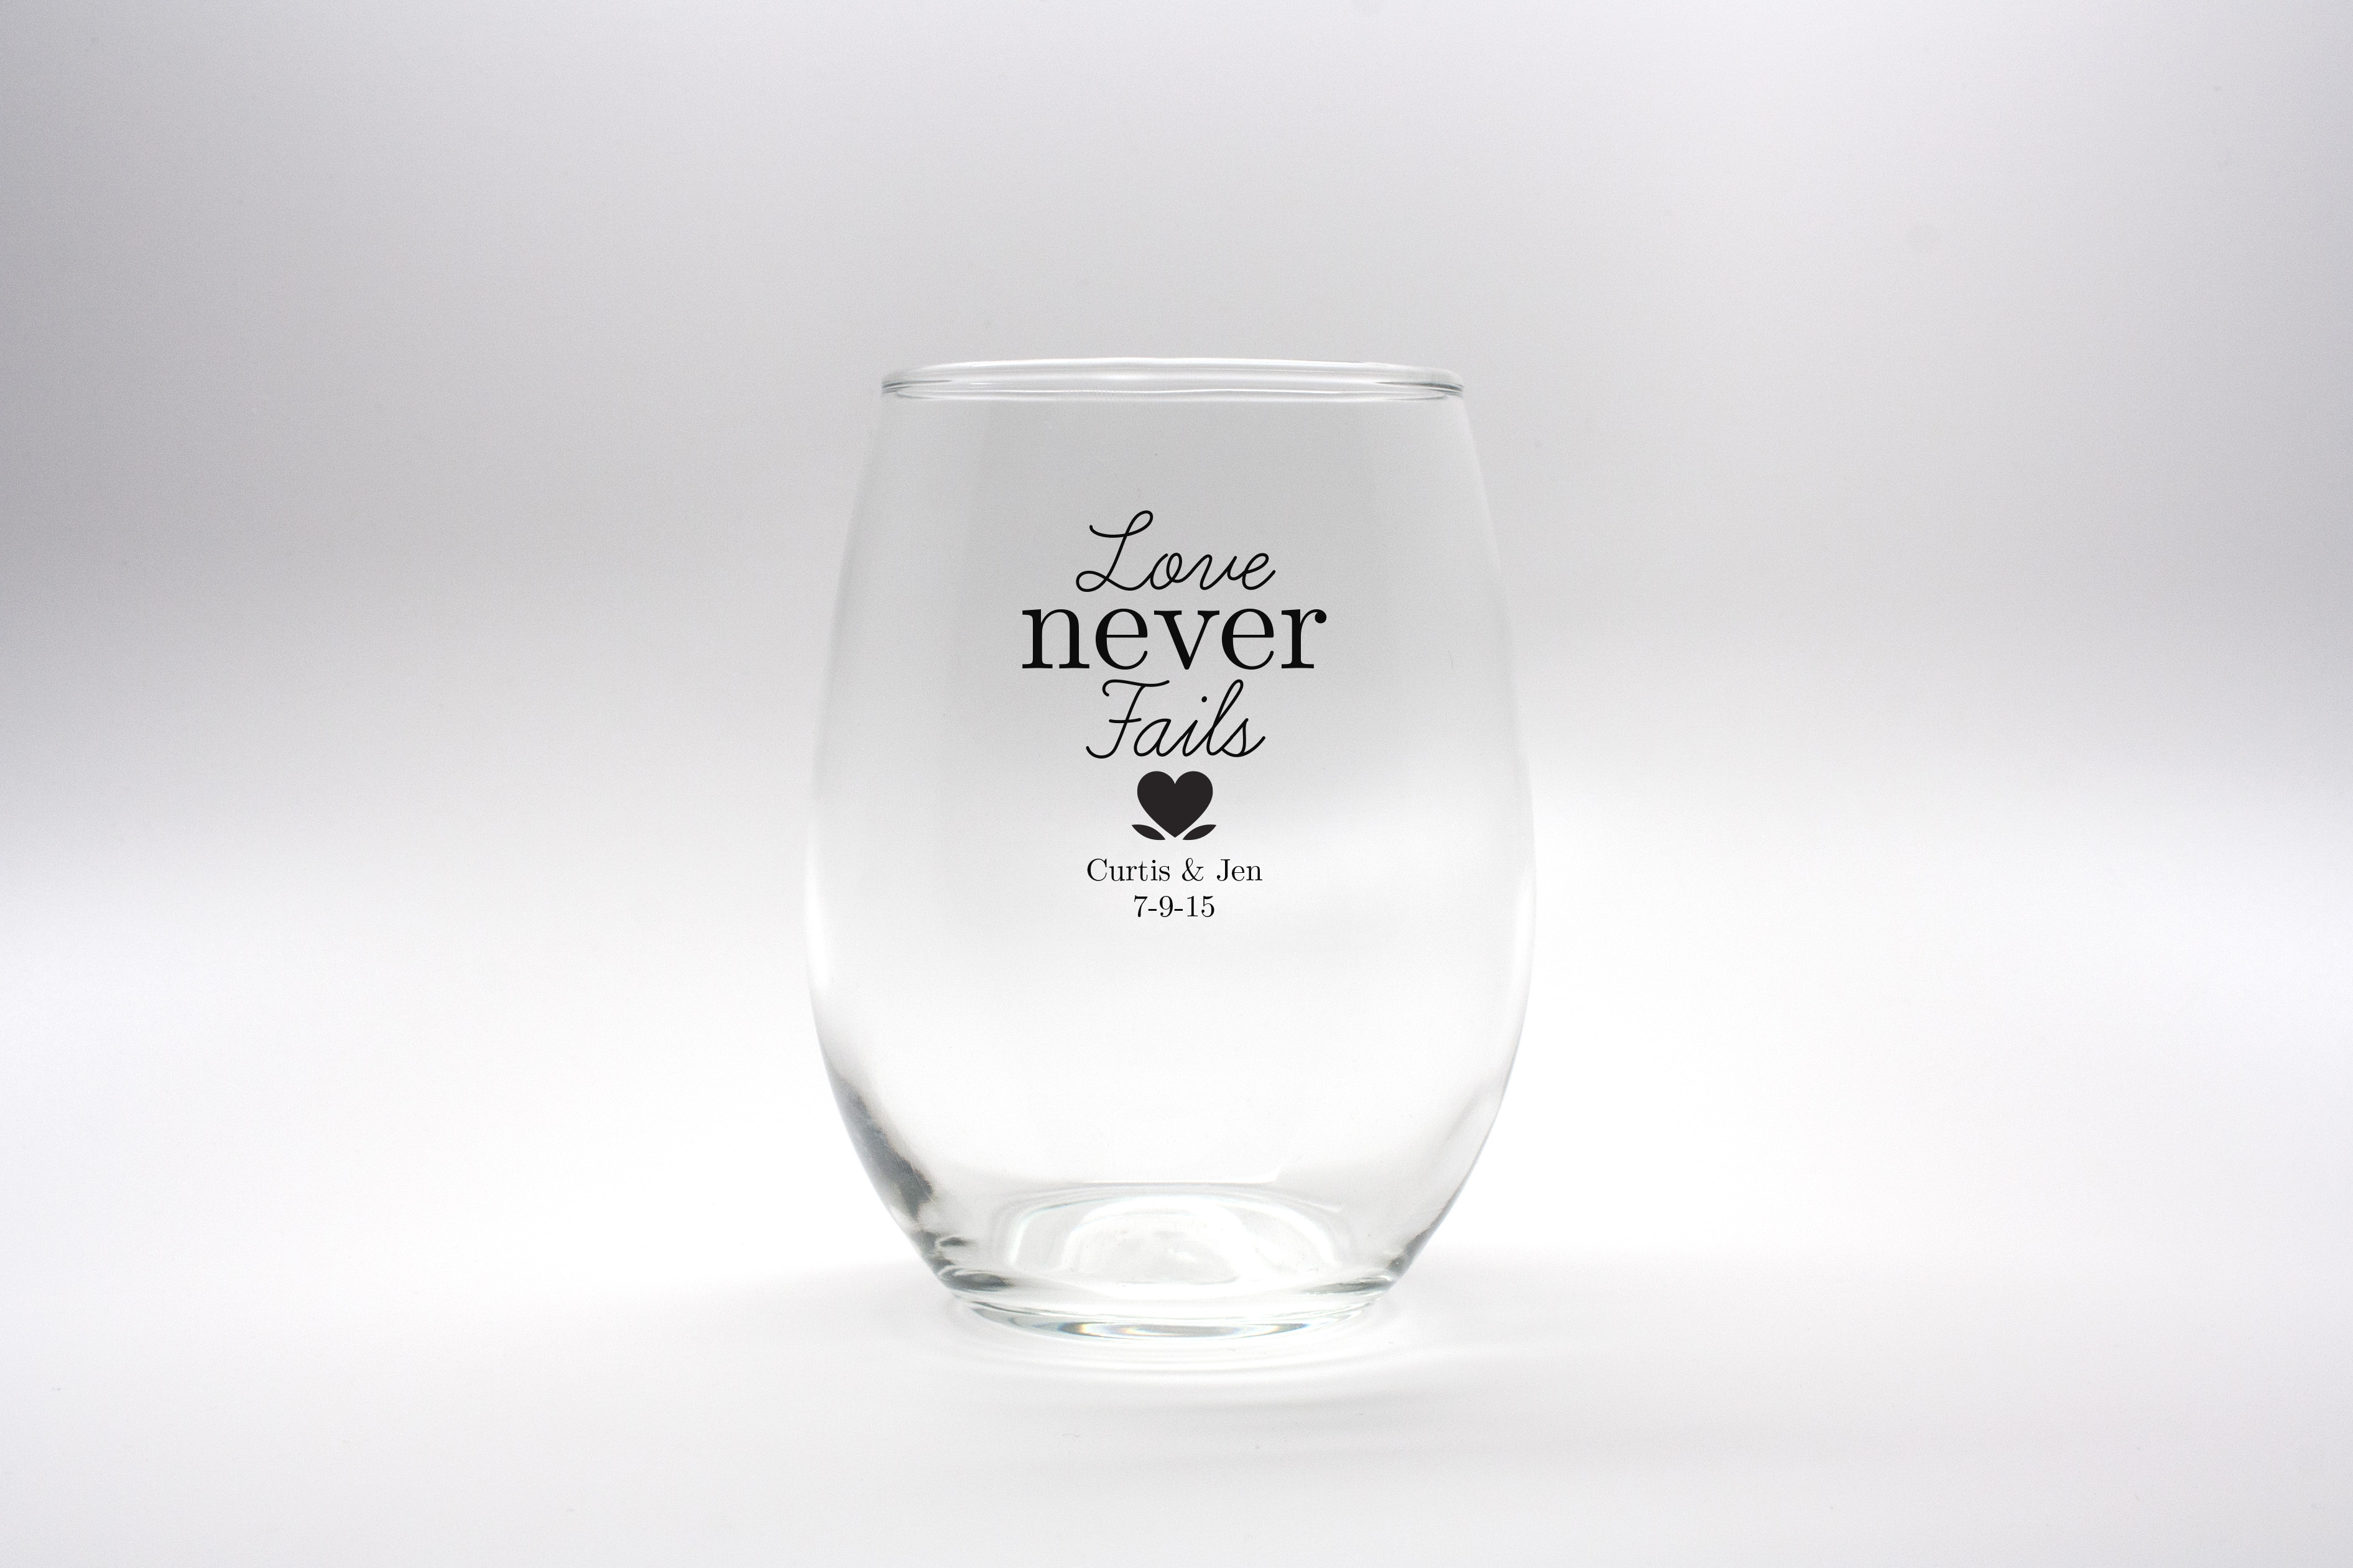 Personalized Stemless Wine Glasses - 15 oz wedding favors